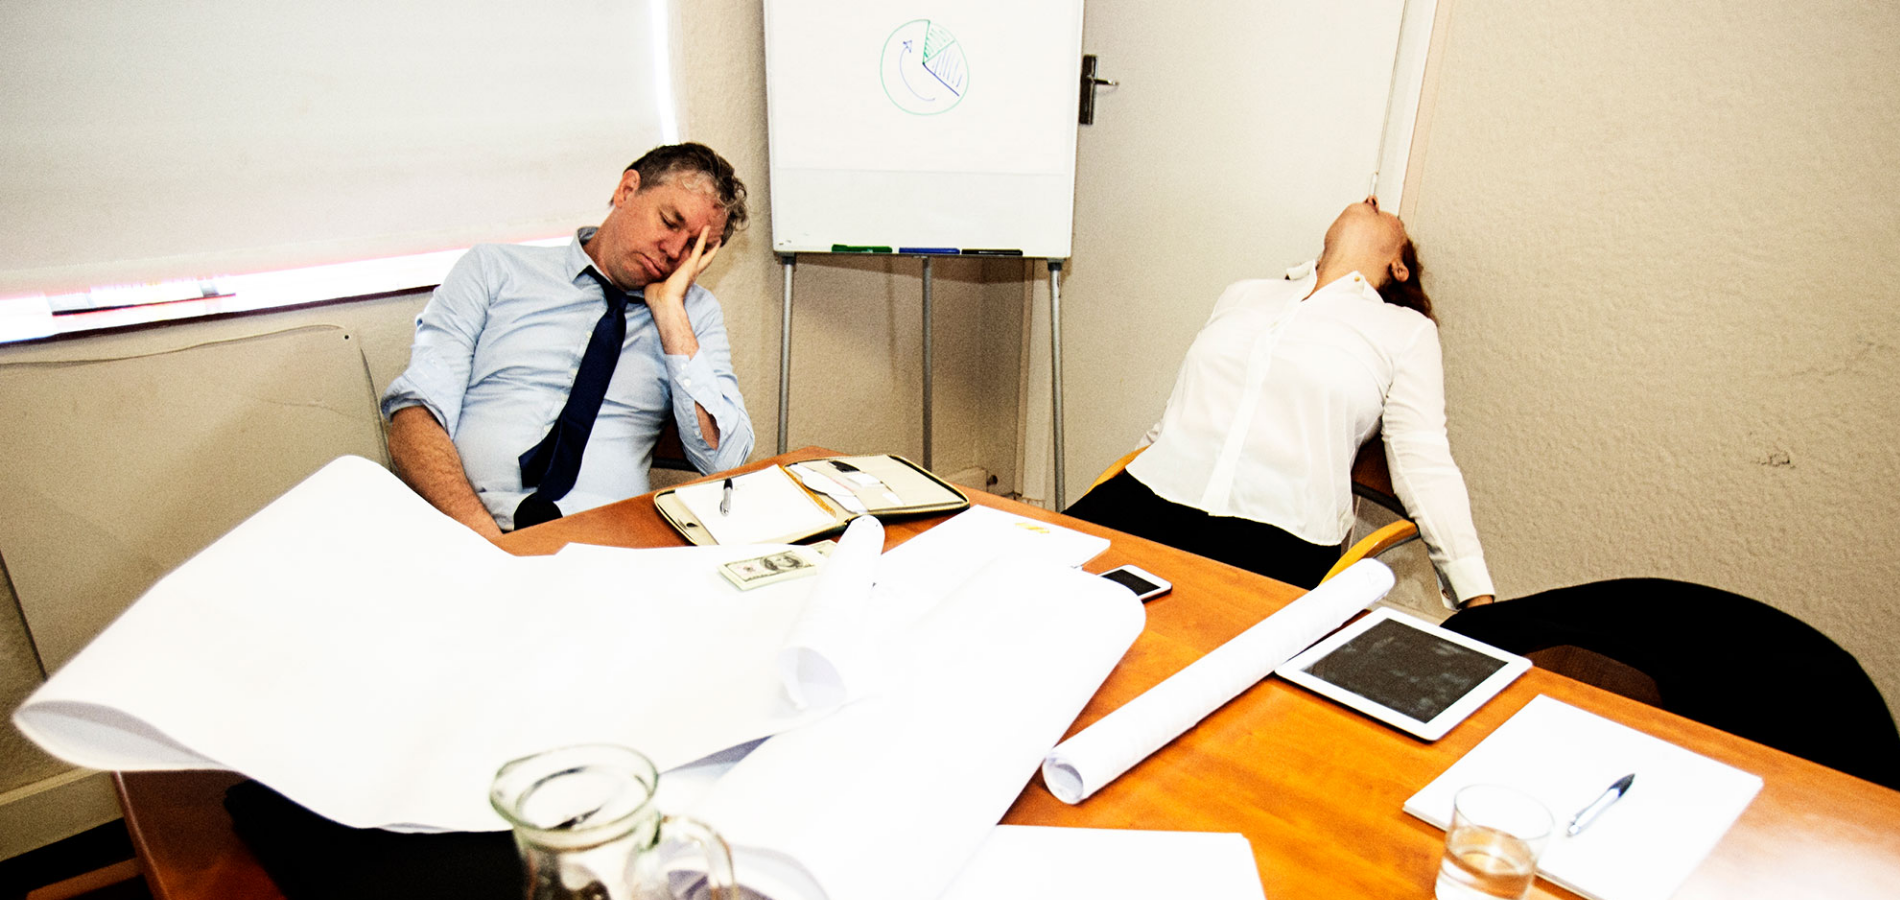 Is Meeting Culture Ruining Your Business?